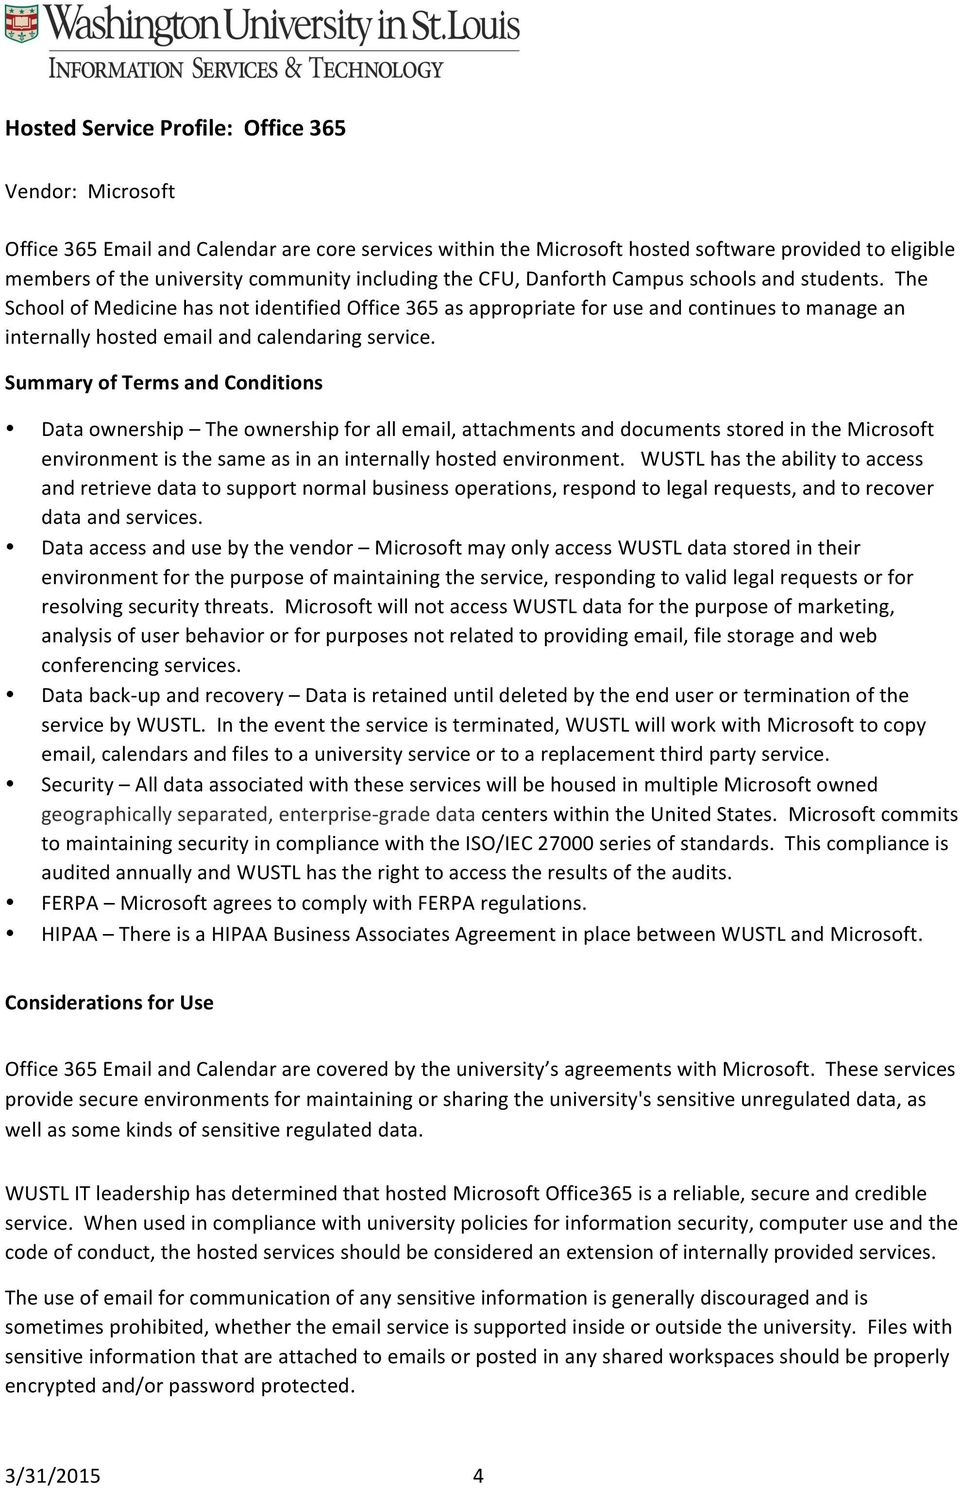 Summary of Terms and Conditions Data ownership The ownership for all email, attachments and documents stored in the Microsoft environment is the same as in an internally hosted environment.